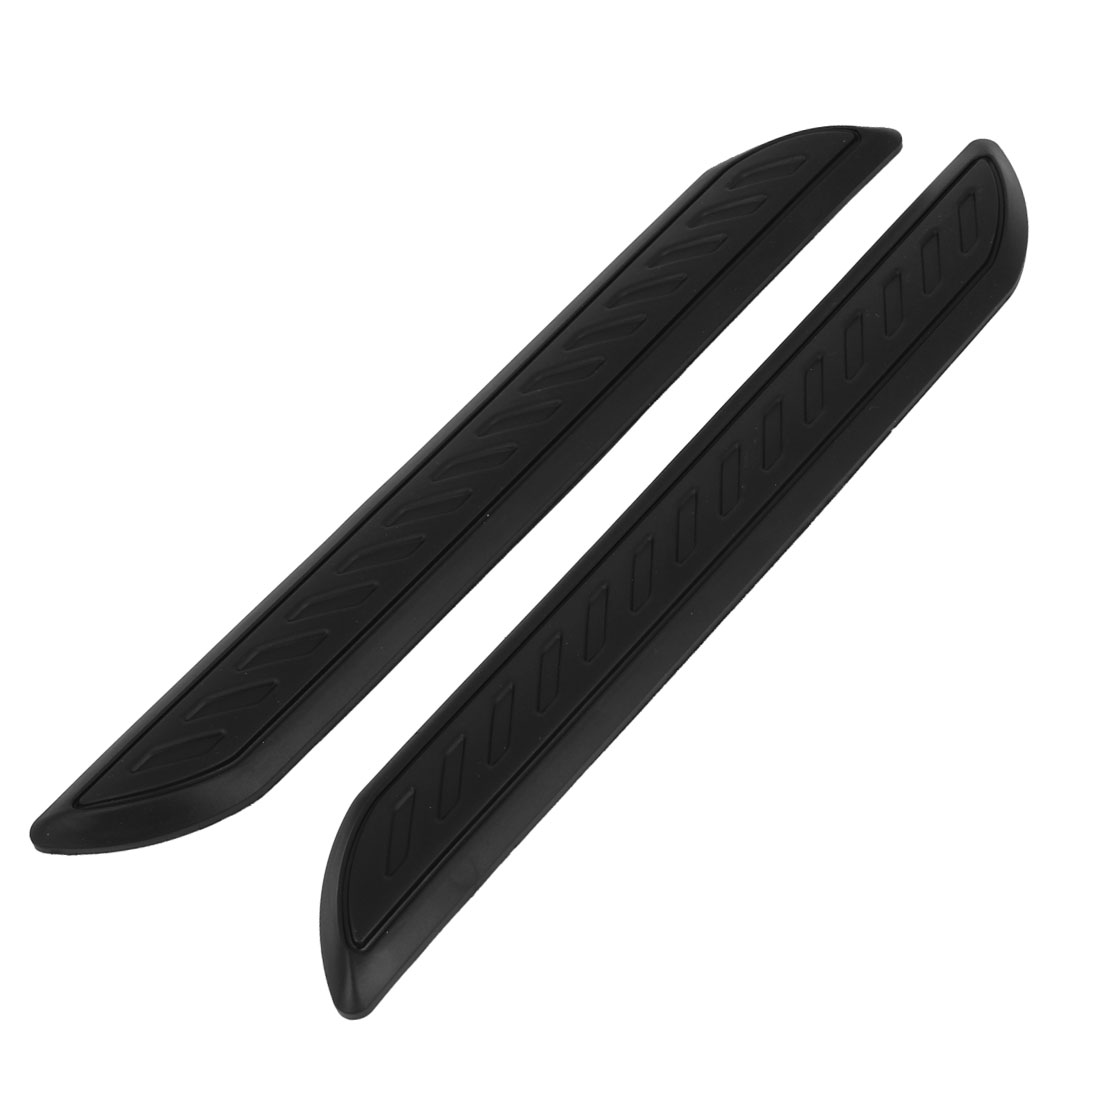 Pair Decoration Black Soft Plastic Car Door Bumper Guard Bar